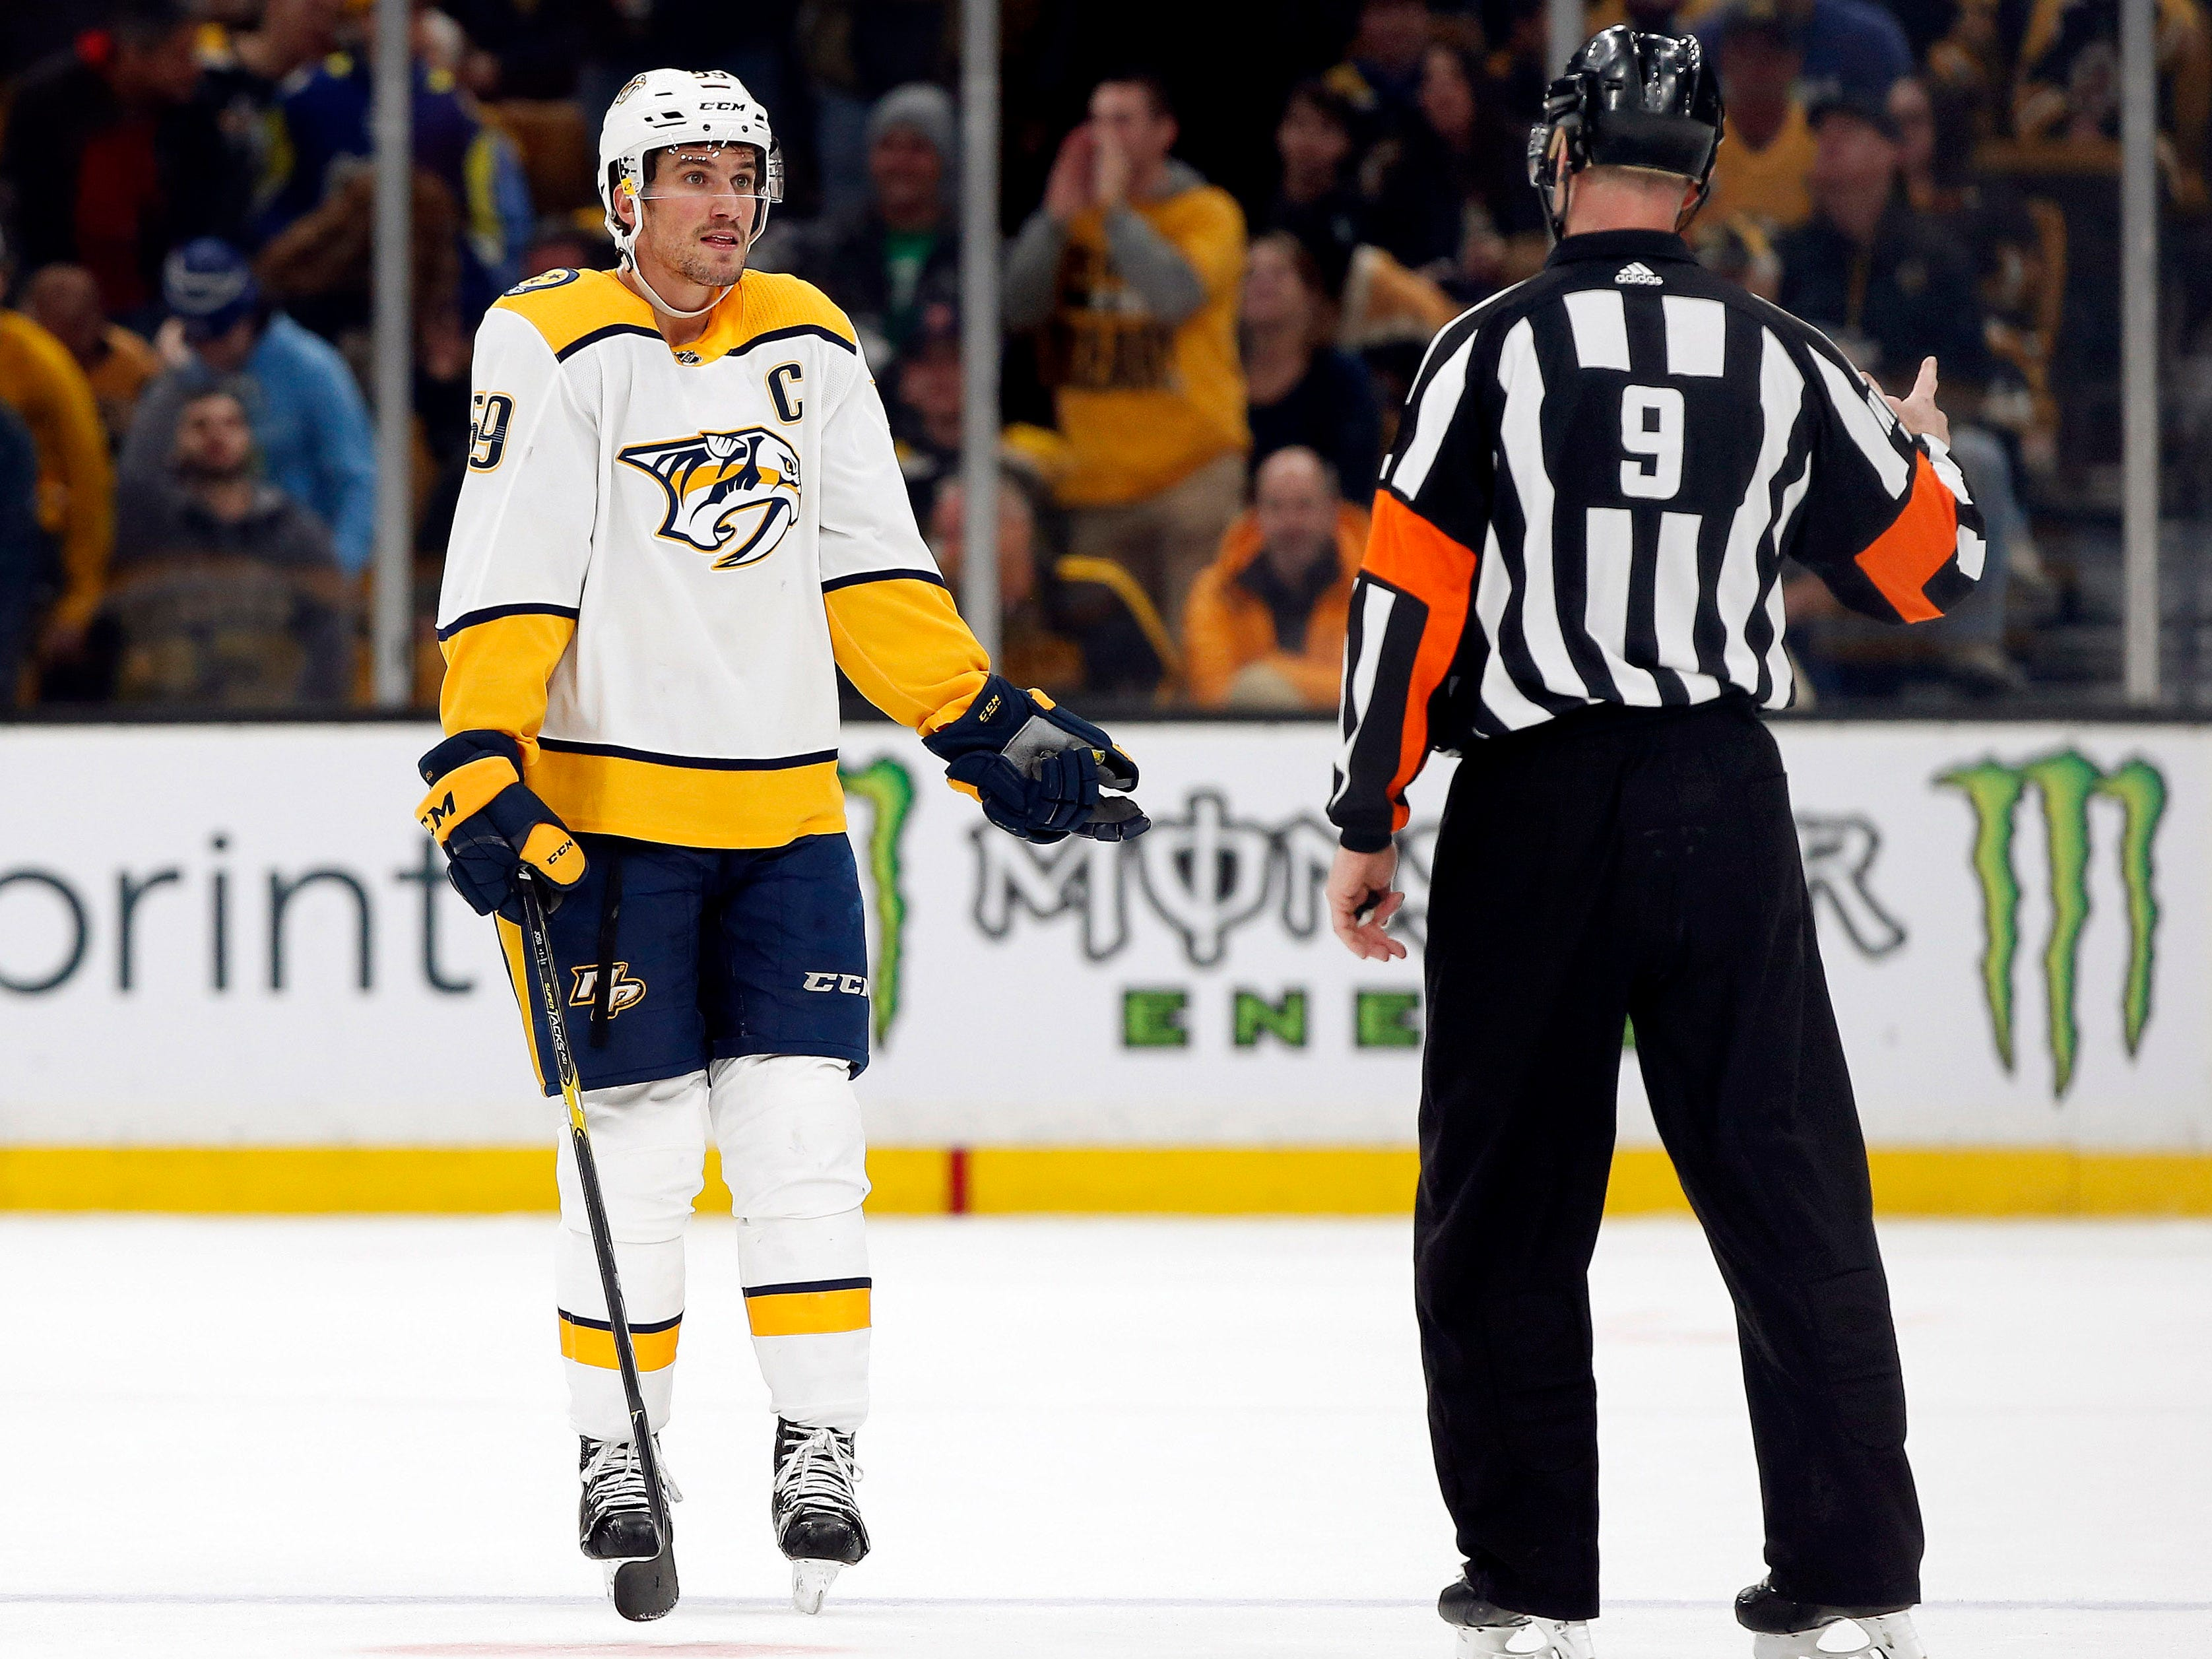 Nashville Predators defenseman Roman Josi (59) reacts to being called for a penalty by referee Dan O'Rourke (9) during the third period of their 5-2 loss to the Boston Bruins at TD Garden.